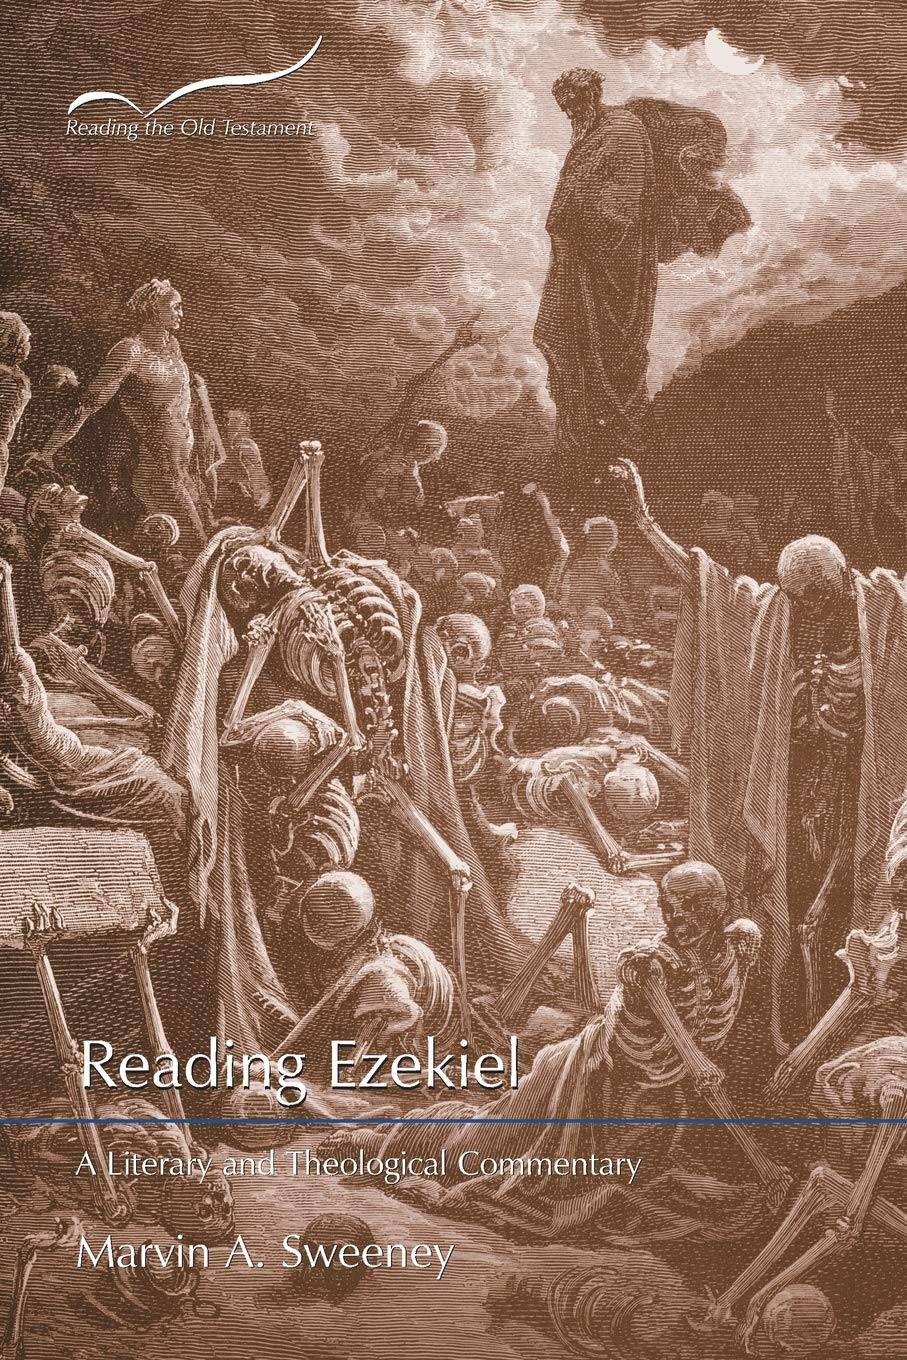 Reading Ezekiel: A Literary and Theological Commentary (Reading the Old Testament)